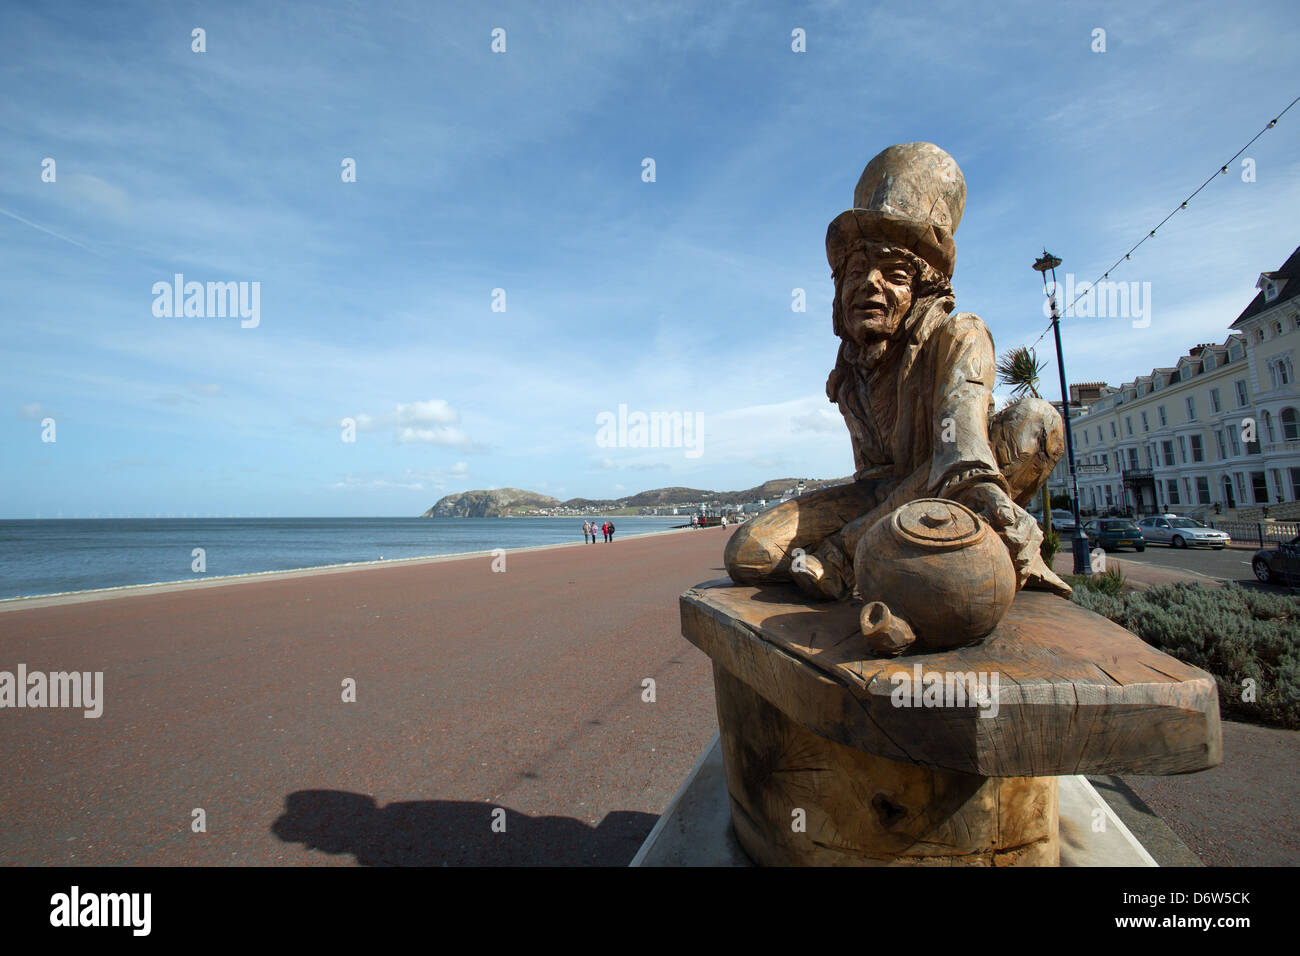 The town of Llandudno, Wales. The Simon Hedger sculpted Mad Hatter oak sculpture on the promenade at Llandudno's - Stock Image